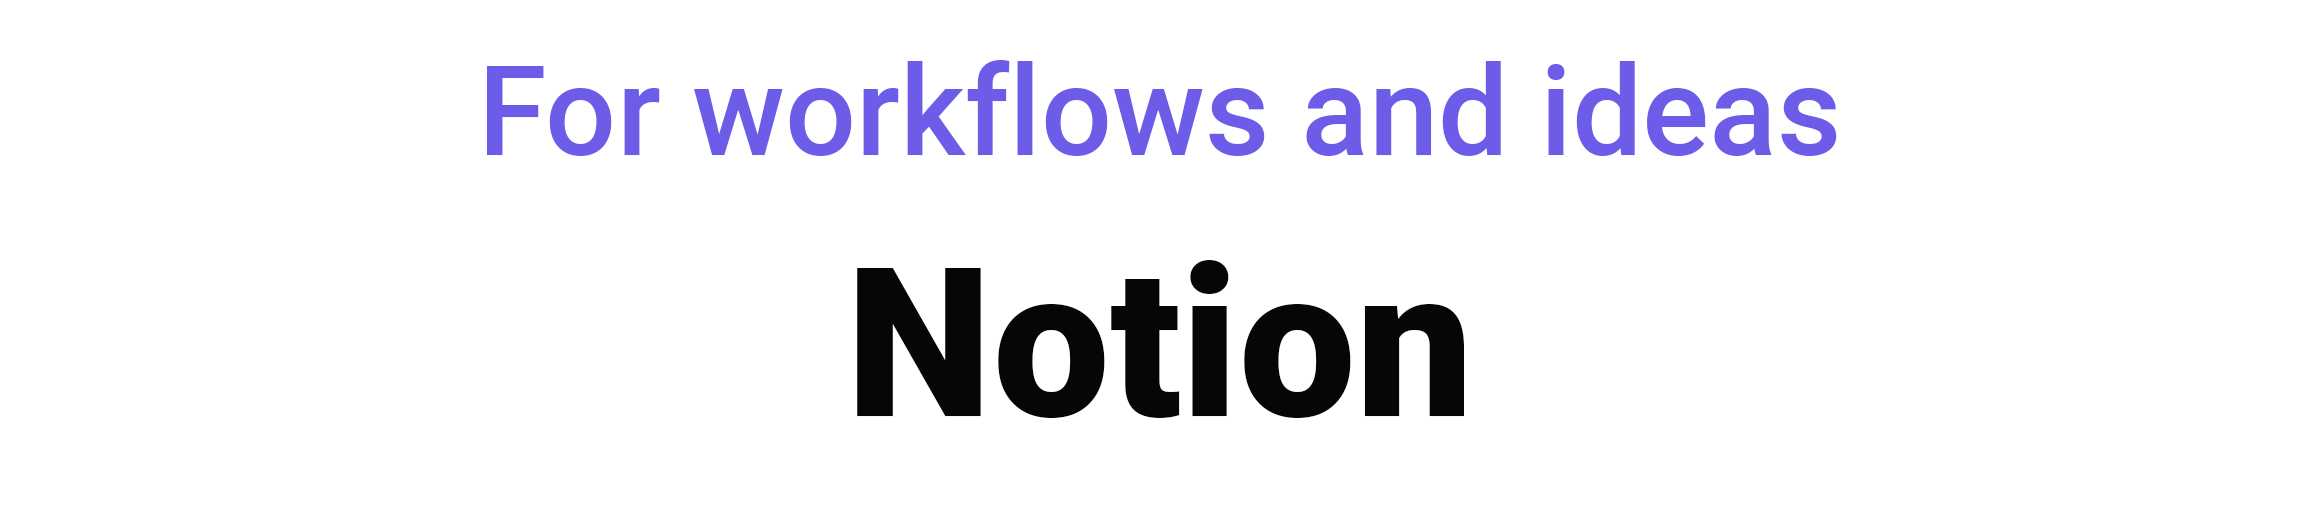 For workflows and ideas NOTION remote team managing tools